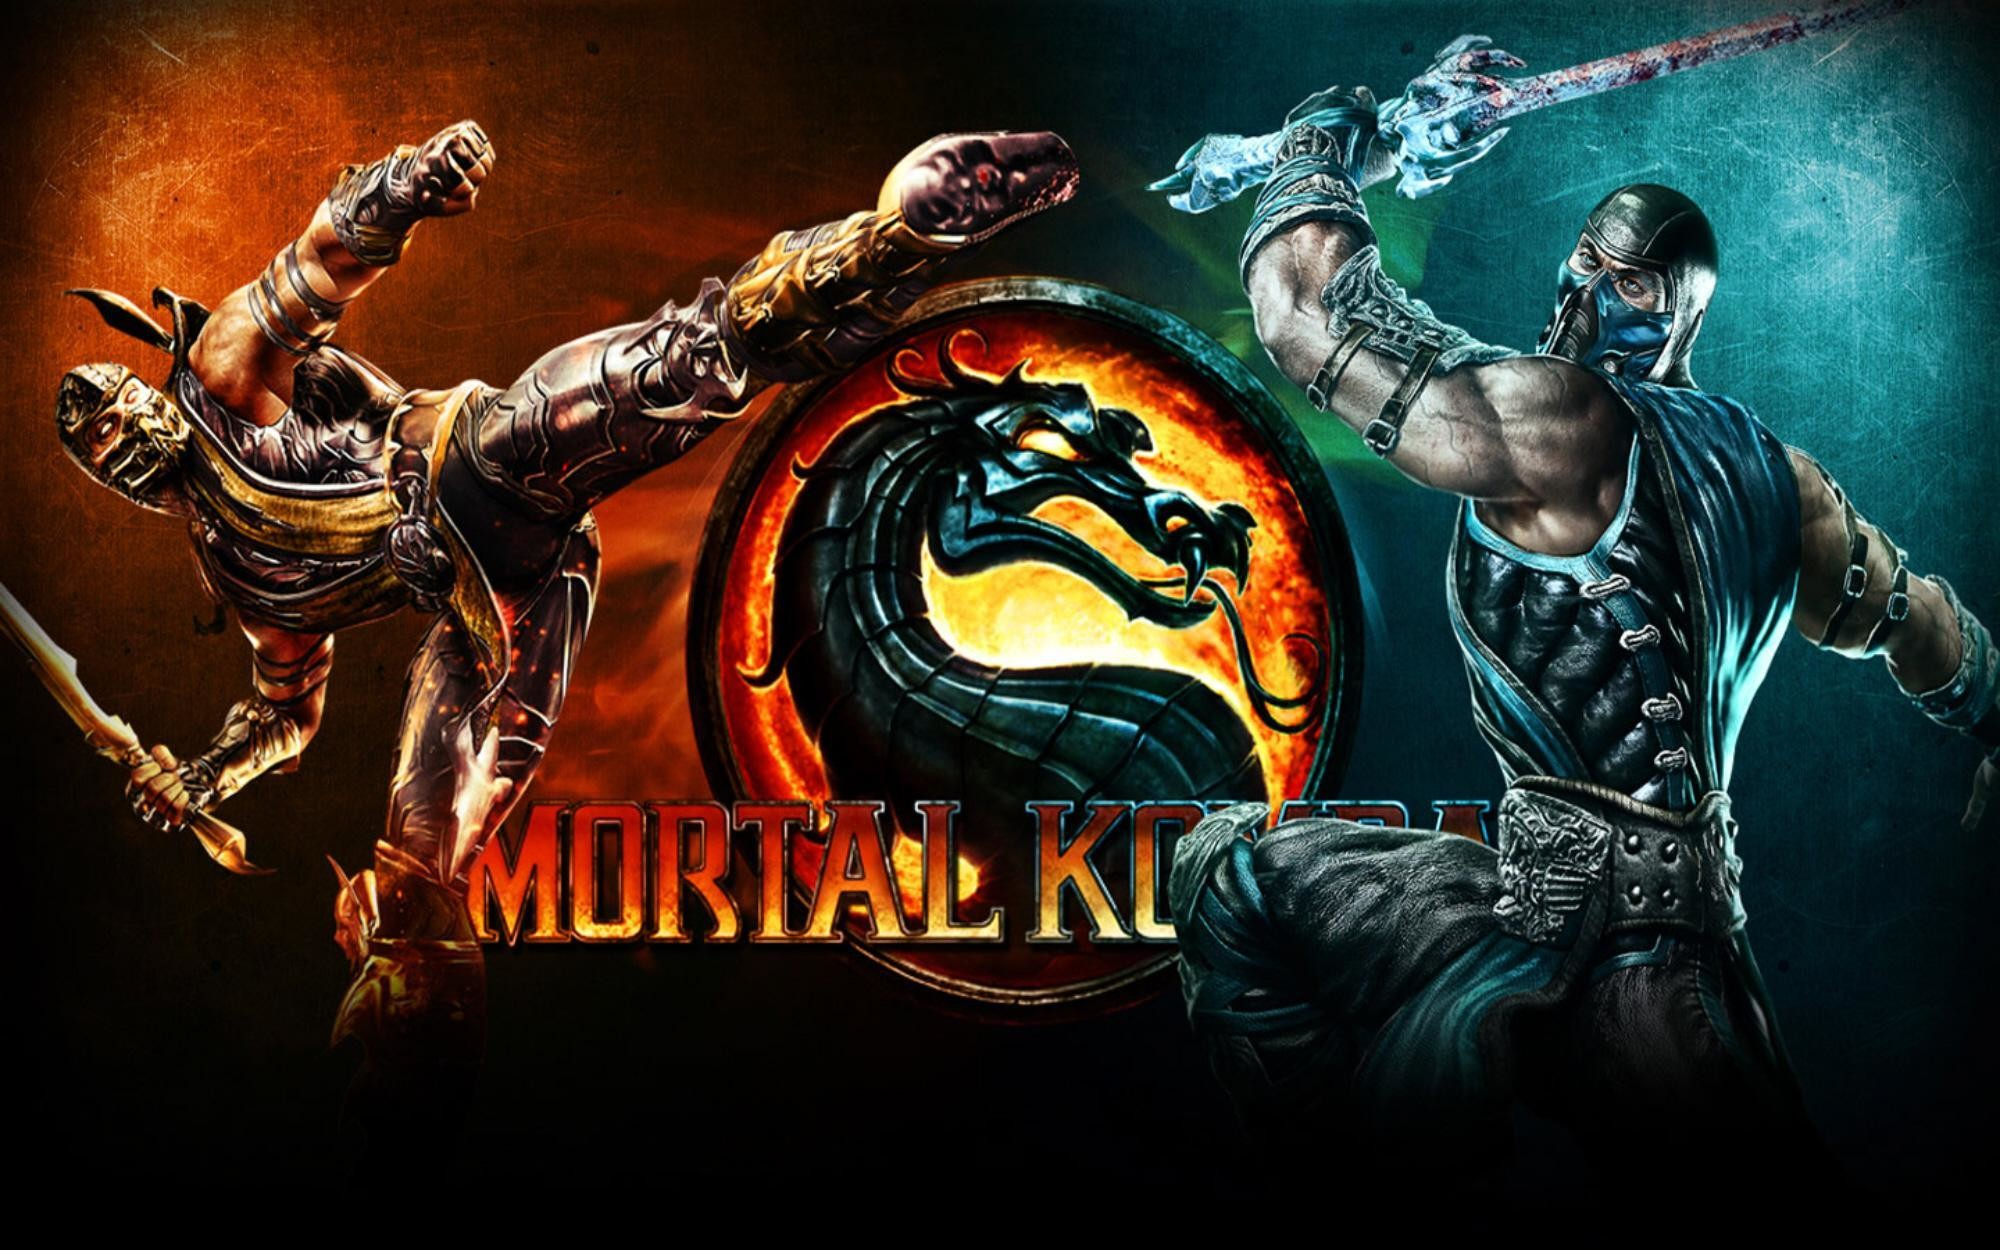 2000x1250 Mortal Kombat wallpaper Sub-Zero and Scorpion and logo Read more